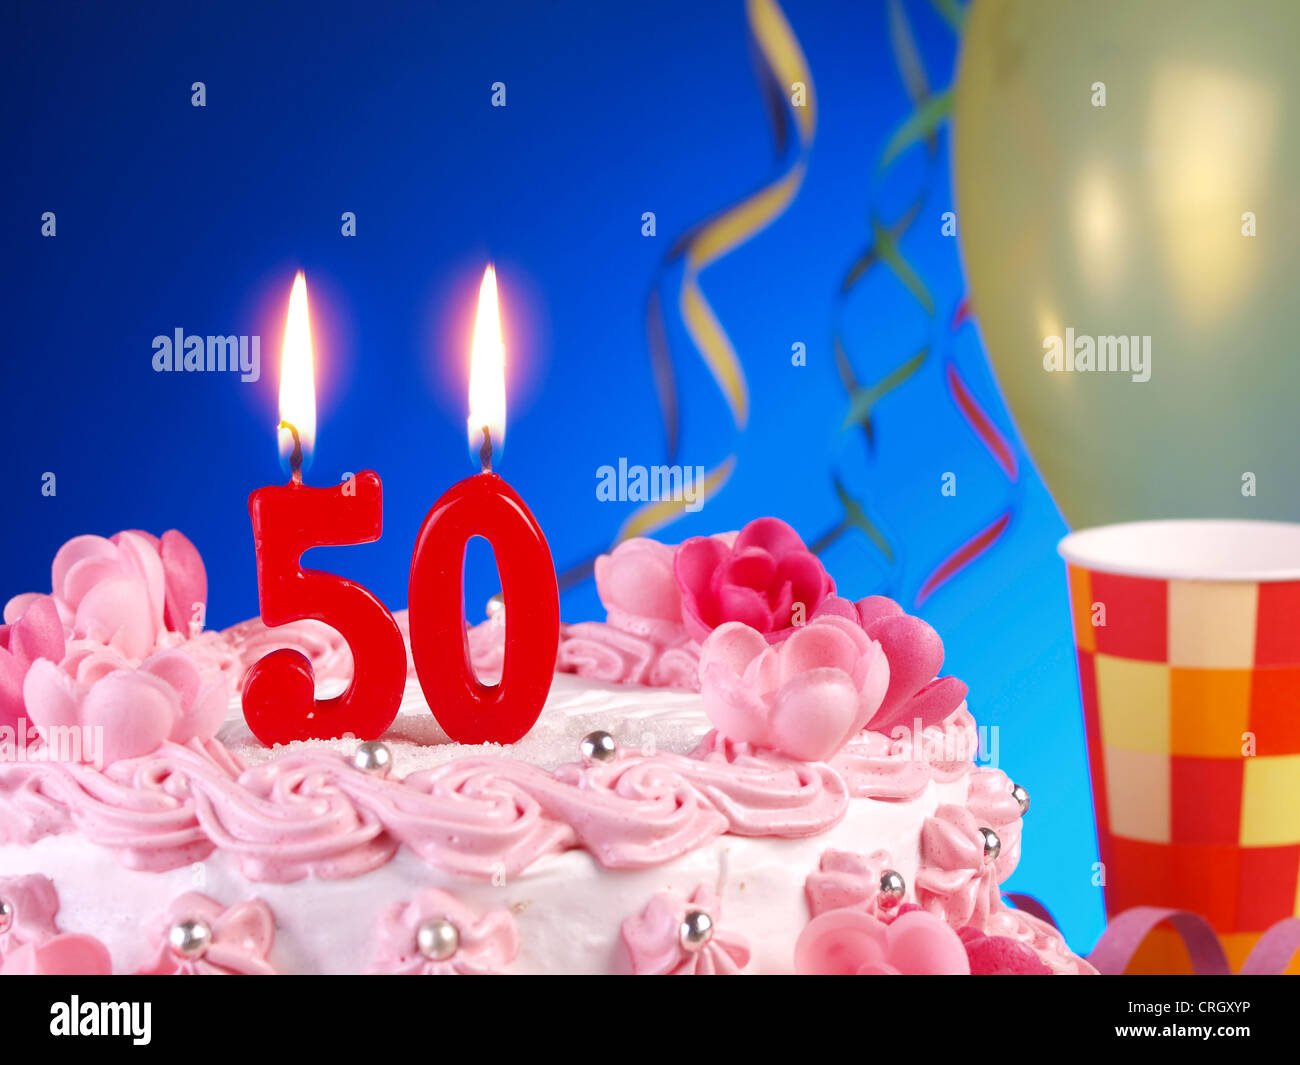 Birthday Anniversary Cake With Candles Showing Nr 50